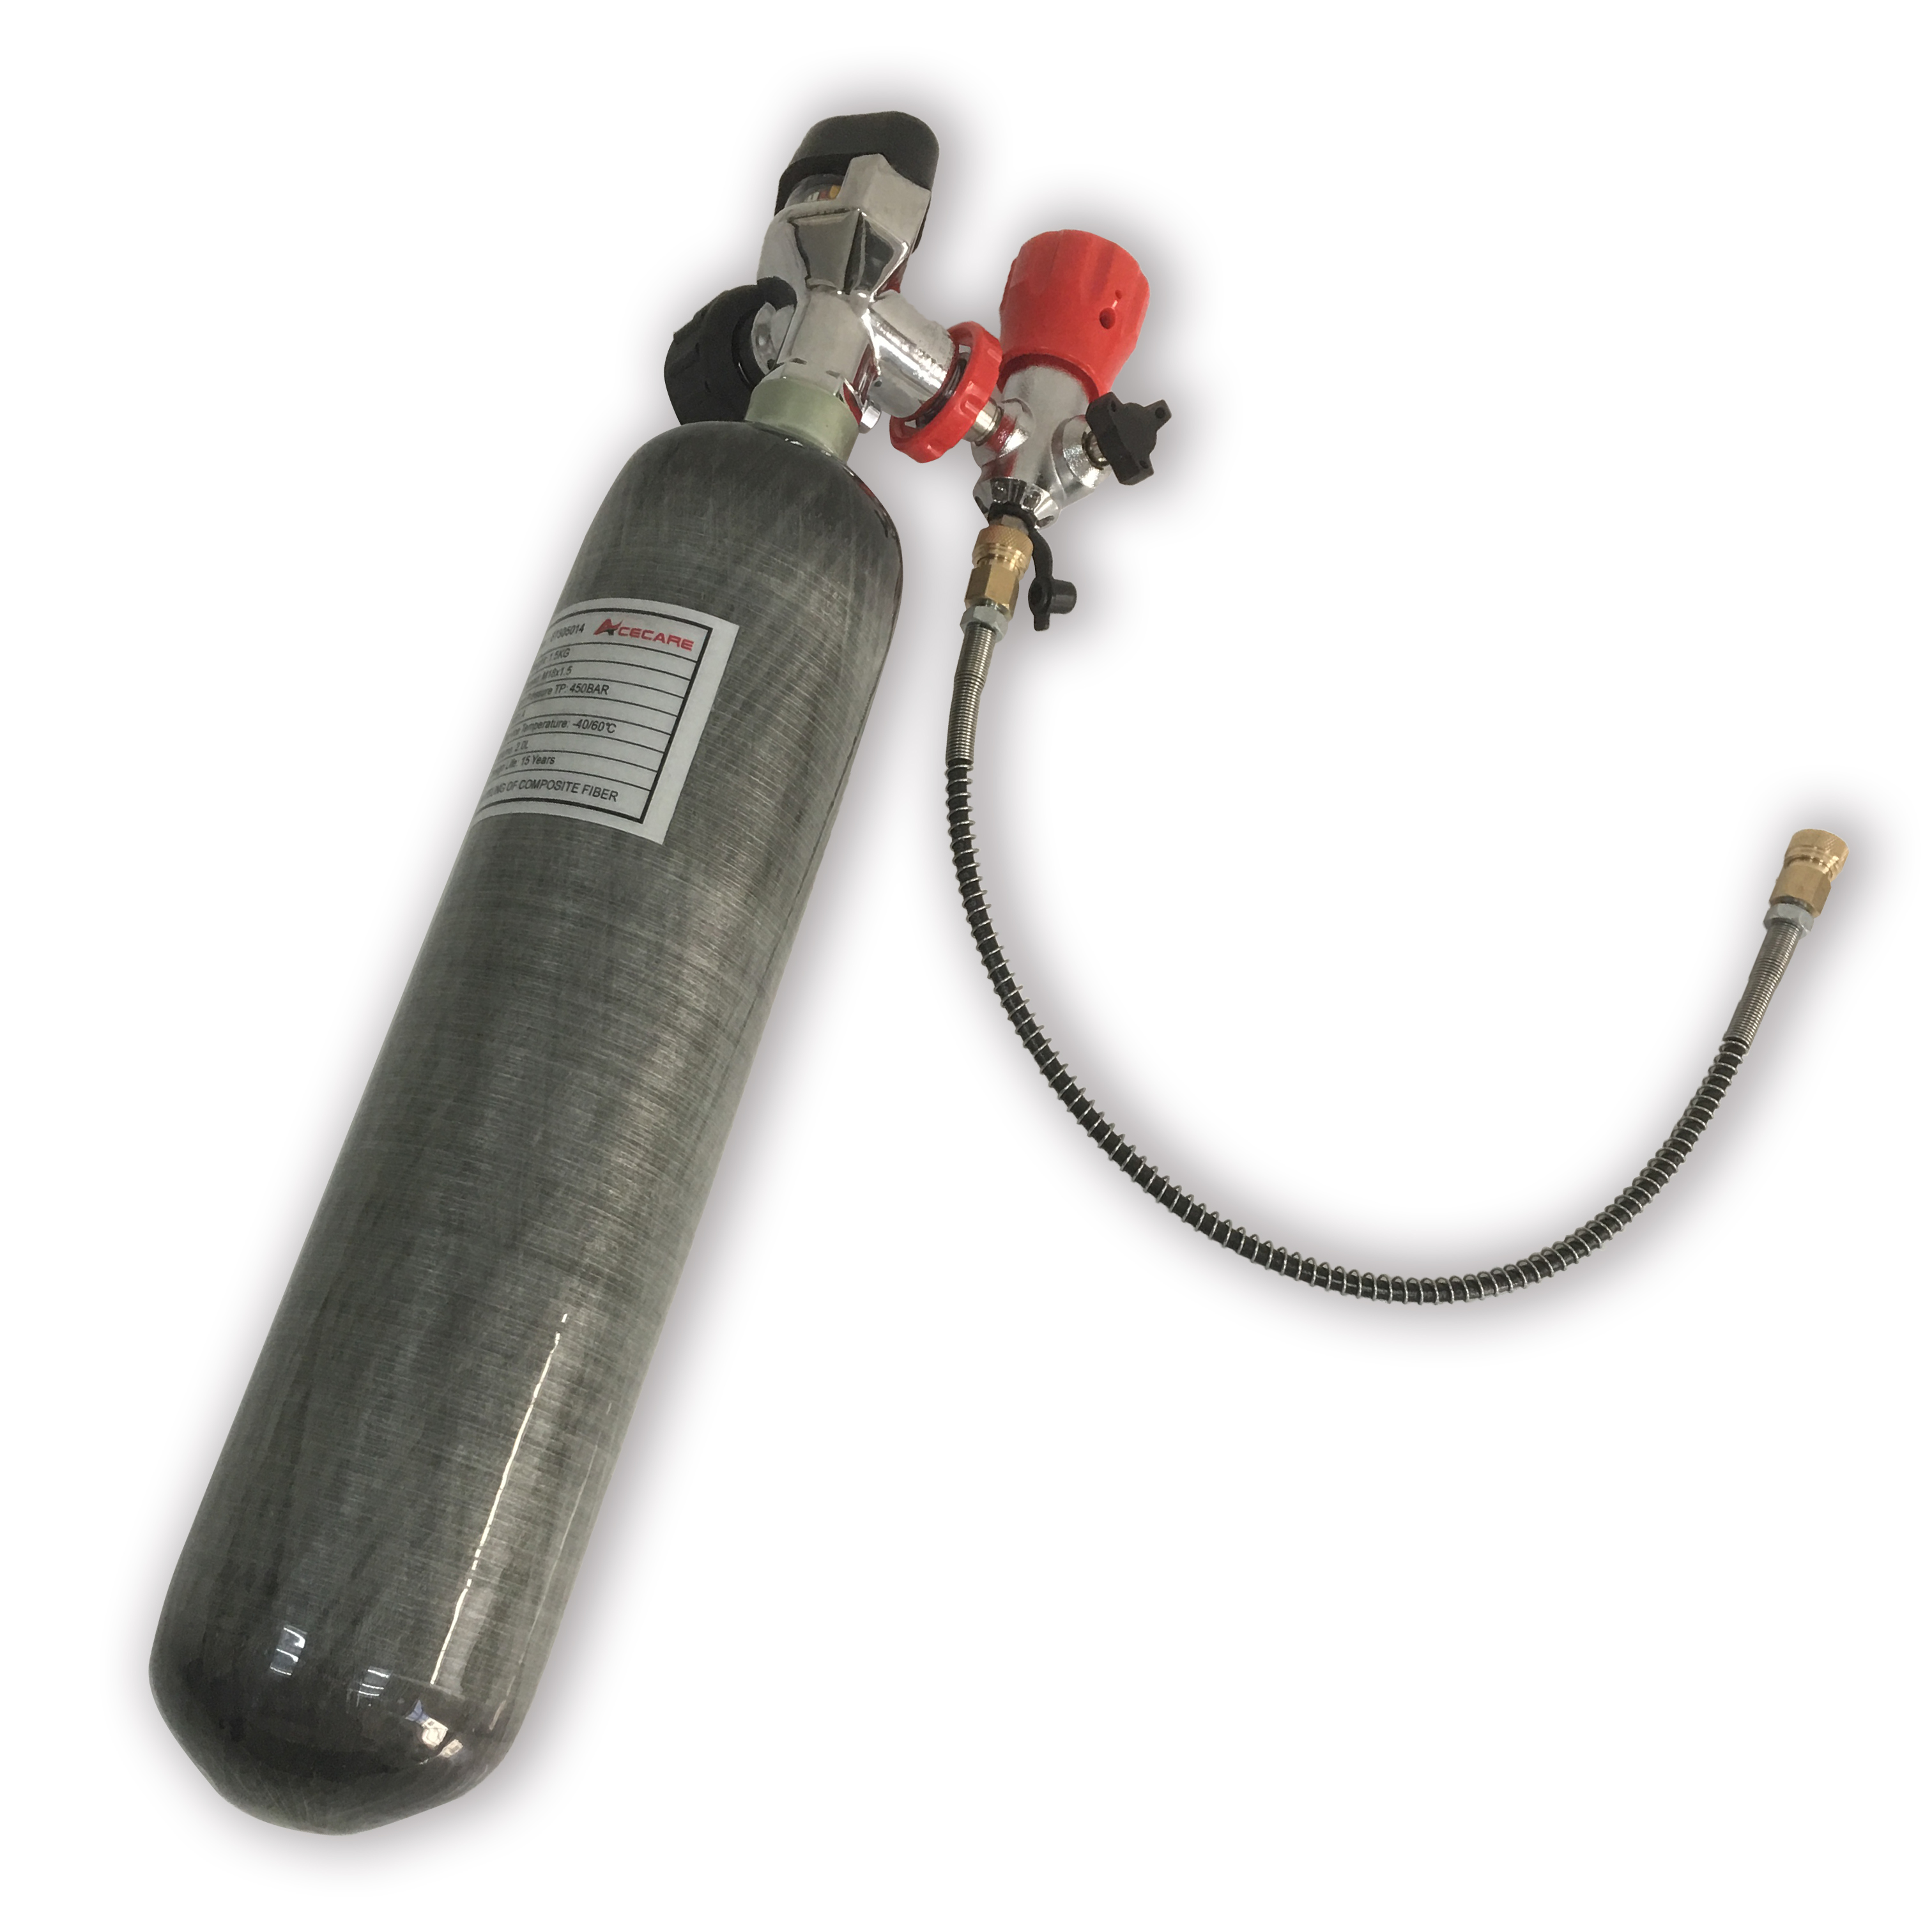 AC102201 Acecare 2L Paintball Co2 4500Psi Cylinder Pcp Air Rifle Compressed Air Tank Air Pellet Gun 300Bar Airforce Condor Pcp-M